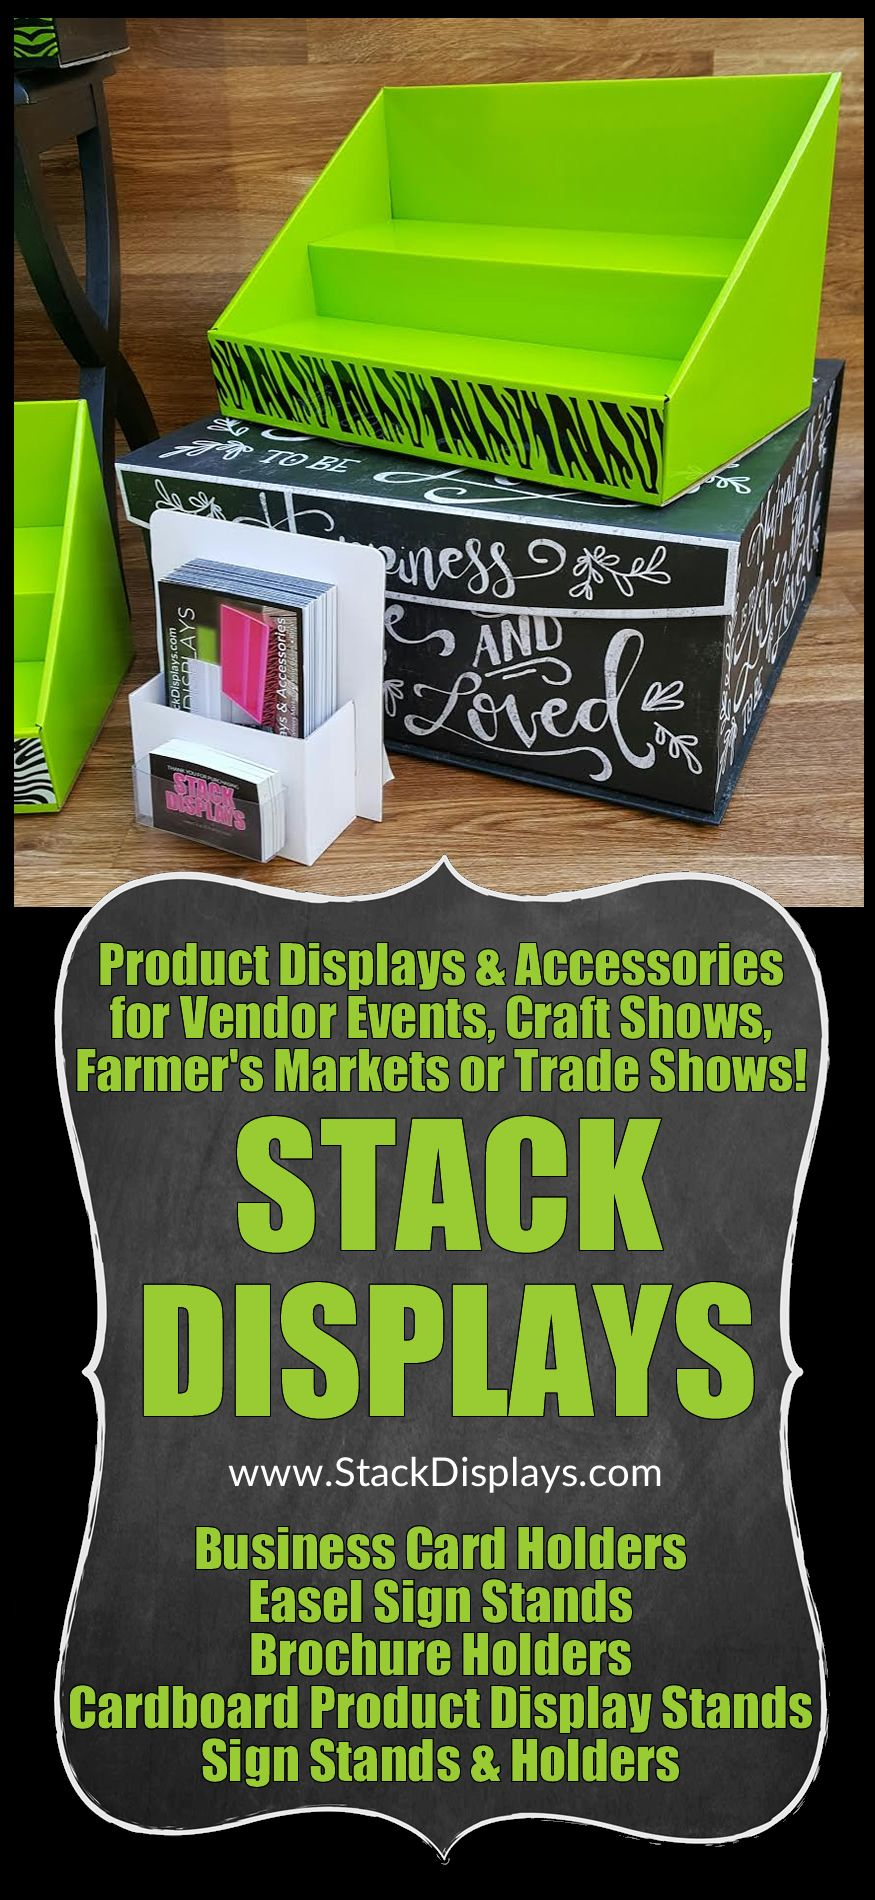 Cardboard Counter Display - Lime Green | Vendor events, Green ...